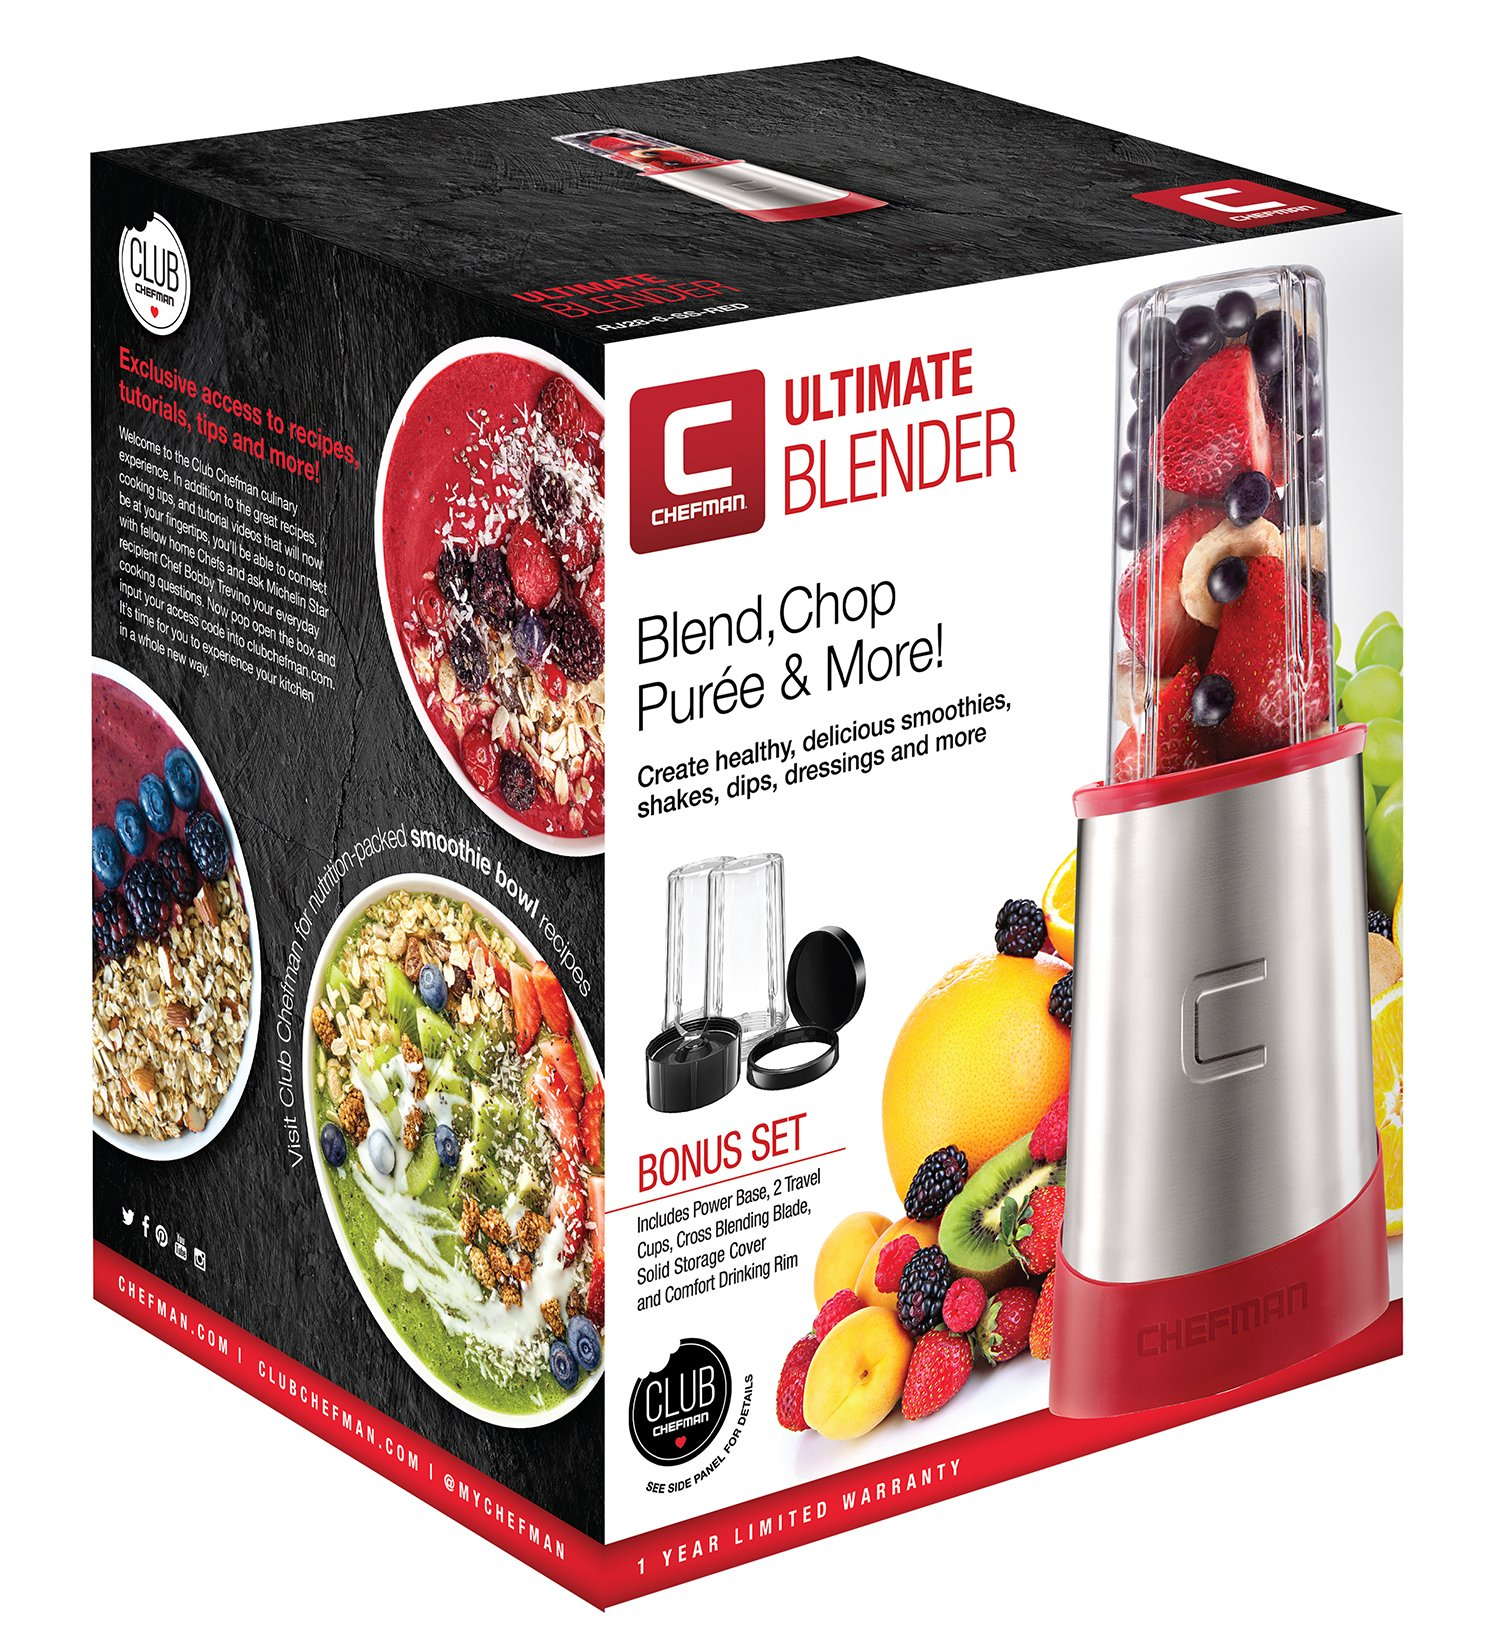 Chefman Ultimate Personal Smoothie Blender, Single Serve, Stainless Steel Blending Blade, 2 Travel Cups with Lids, Solid Storage Cover and Comfort Drinking Rim, 6 Piece - RJ28-6-SS-Red by Chefman (Image #8)